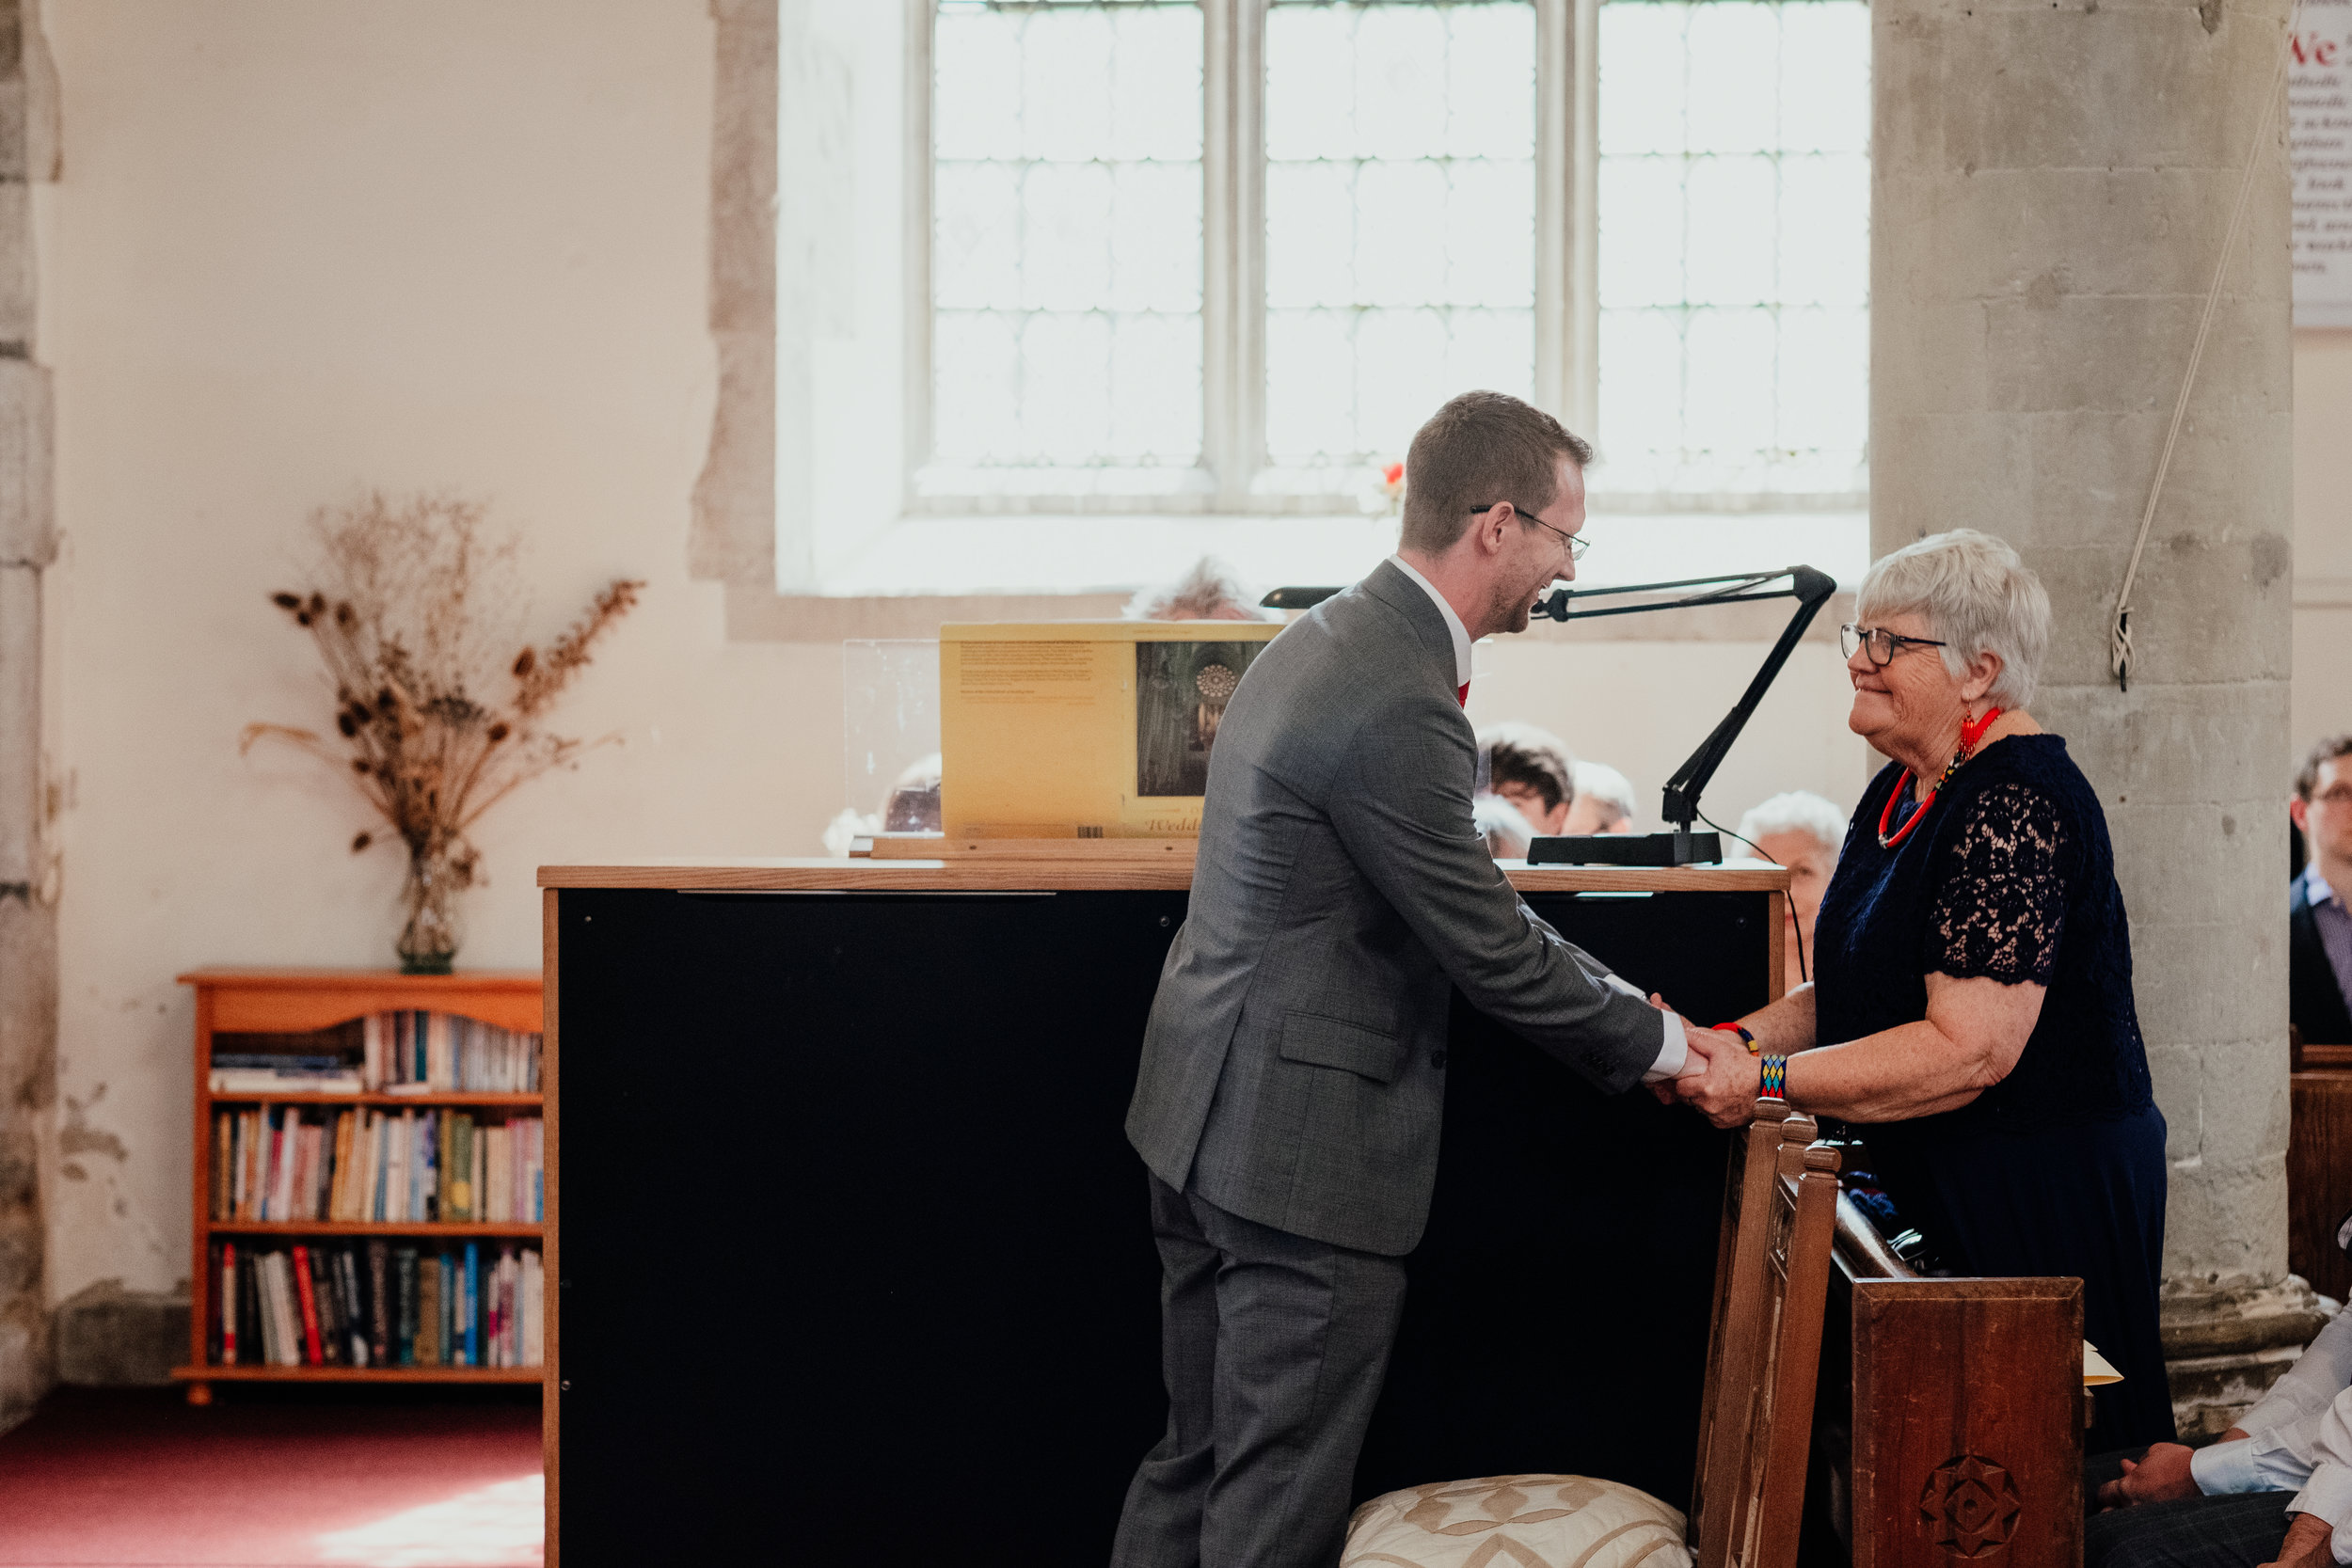 Groom speaking with his mum at the church before wedding